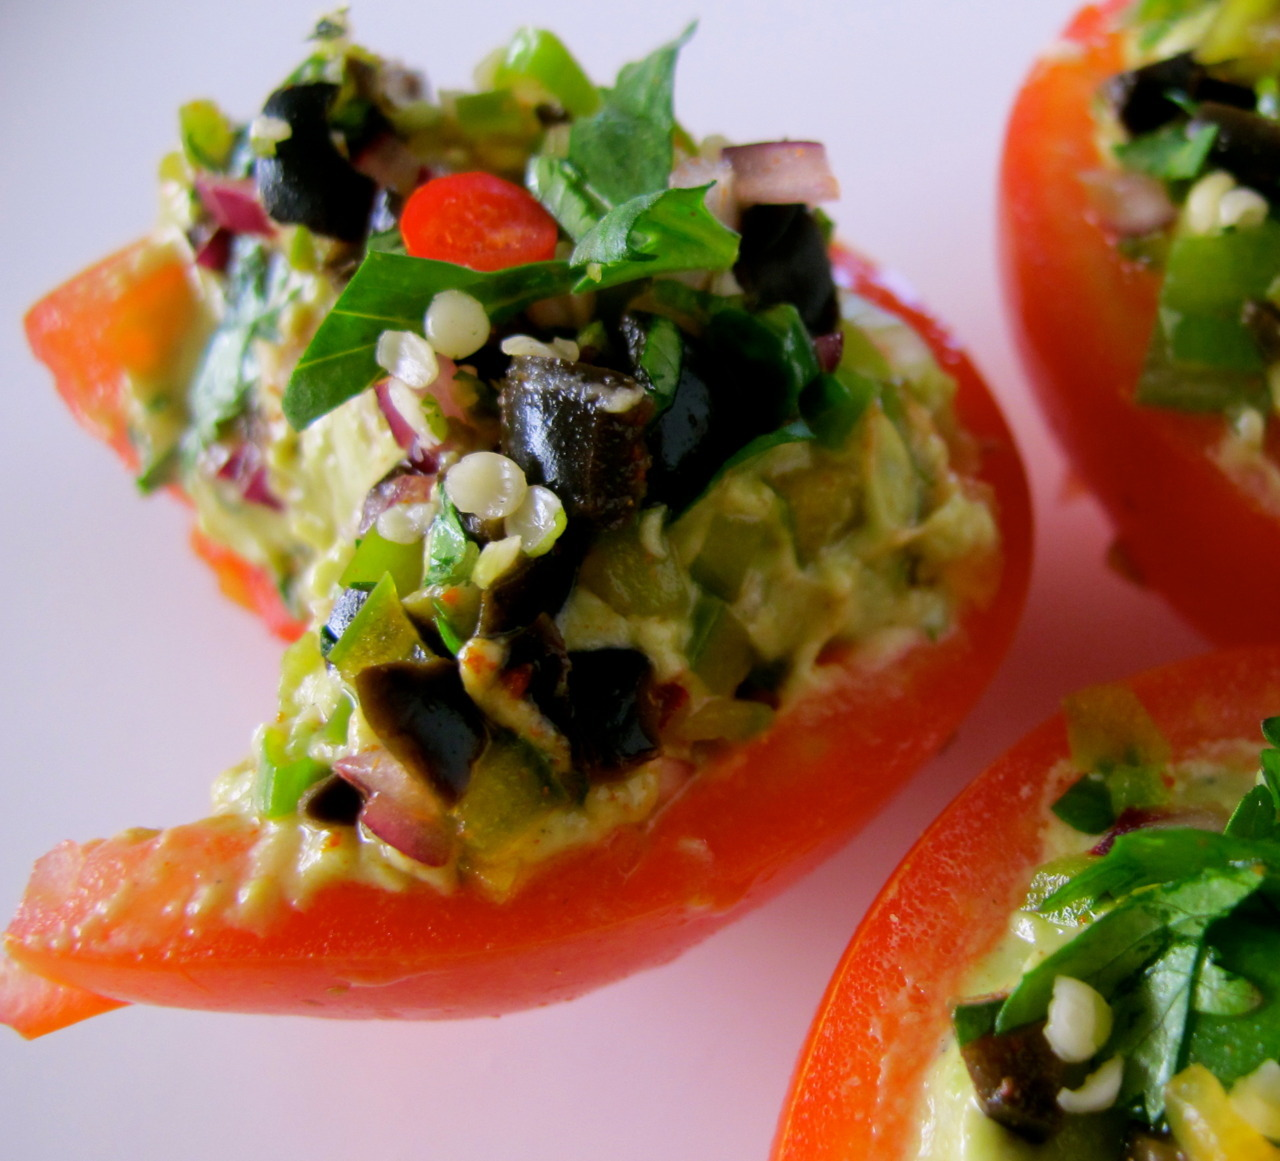 queenbliss:  raggedyshan: Raw Protein Guacamole & Salsa Stuffed Tomatoes… Ingredients:    - 3 Medium Tomatoes    - Hemp Seeds (to garnish & add additional protein) Protein Guacamole:    - 1 Ripe Avocado    - 1 tbsp Raw Protein Powder (plain unflavoured)    - 1 tbsp Olive Oil (cold press)    - 2 tsp Ground Cumin     - 2 tsp Apple Cider Vinegar    - 1 Pinch Celtic Sea Salt    - 1 Pinch Ground Black Pepper Green Salsa Topping:    - 1/4 Red Onion (diced)    - 1/4 Green Capsicum (diced)    - 1 heaped Tbsp Black Spanish Olives (diced)    - 1 Sprig of Spring Onion (finely chopped)    - 1 Tbsp Cilantro (finely chopped)    - 1 pinch of Smoked Paprika    - Juice of half one lime Instructions:    1. Cut tomatoes in half, and scoop out centres     2. In a food processor add all your guacamole ingredients and blitz until smooth and creamy    3. Prepare all your salsa ingredients in a mixing bowl, and mix when finished    4. With a spoon divide the guacamole into the 6 tomatoes halves and fill    5. Top guacamole filled tomato's with your salsa until all are evenly dispersed    6. Lastly sprinkle with hemp seeds to garnish These are a GREAT Quick bite, fresh packed lunch, or even just an afternoon snack. They are great to look at, and so tasty! I'm always trying to amp up my protein as I eat a lot of raw foods. The protein guacamole is such a great way to do that, yet stay clean and green! I hope you enjoy these as much as I did!